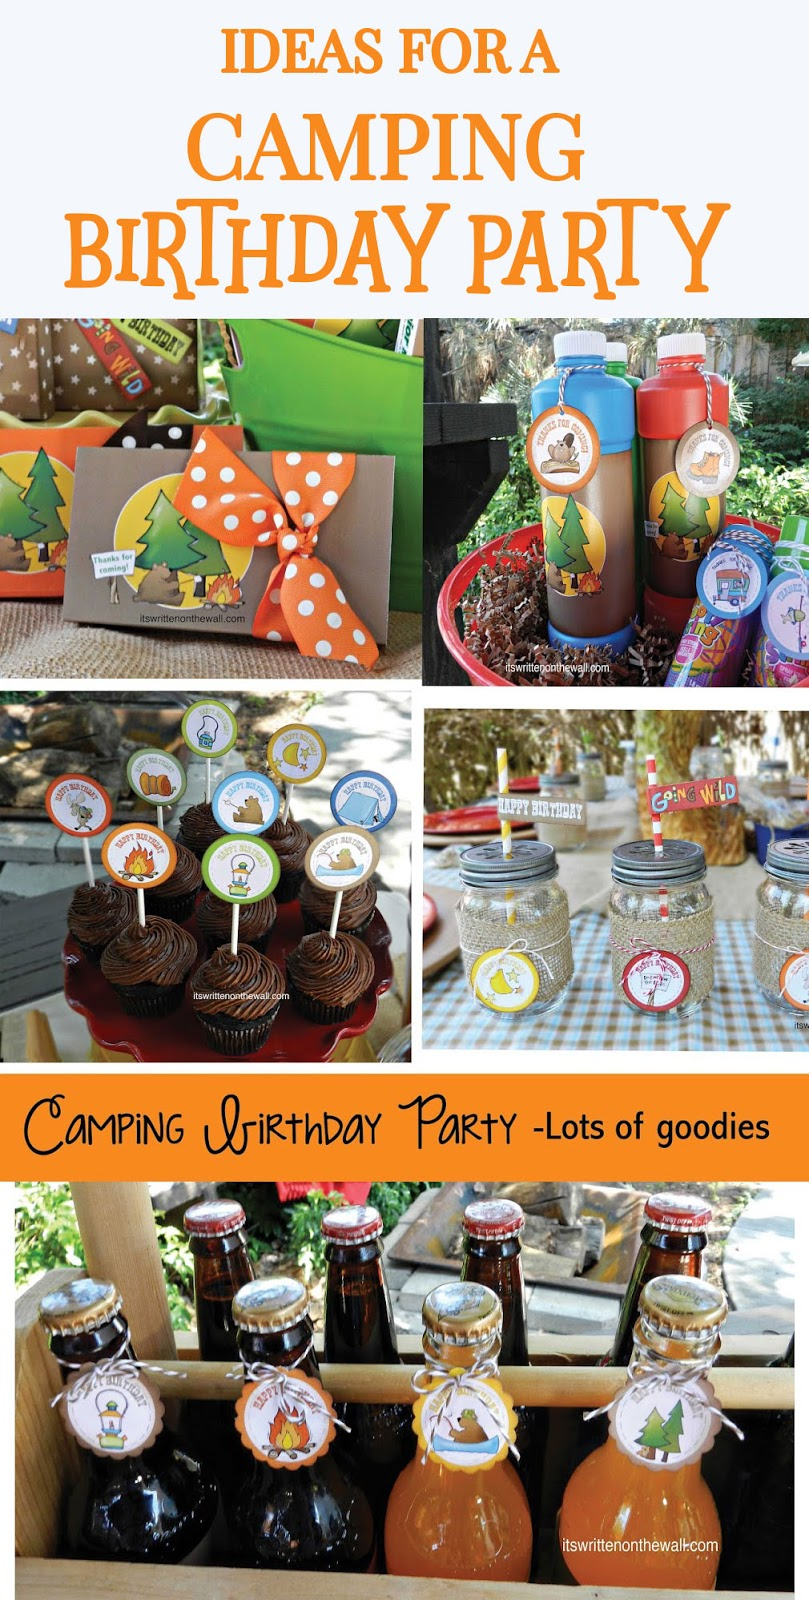 Camping Christmas In July Ideas.It S Written On The Wall Outdoor Party The Perfect Camping